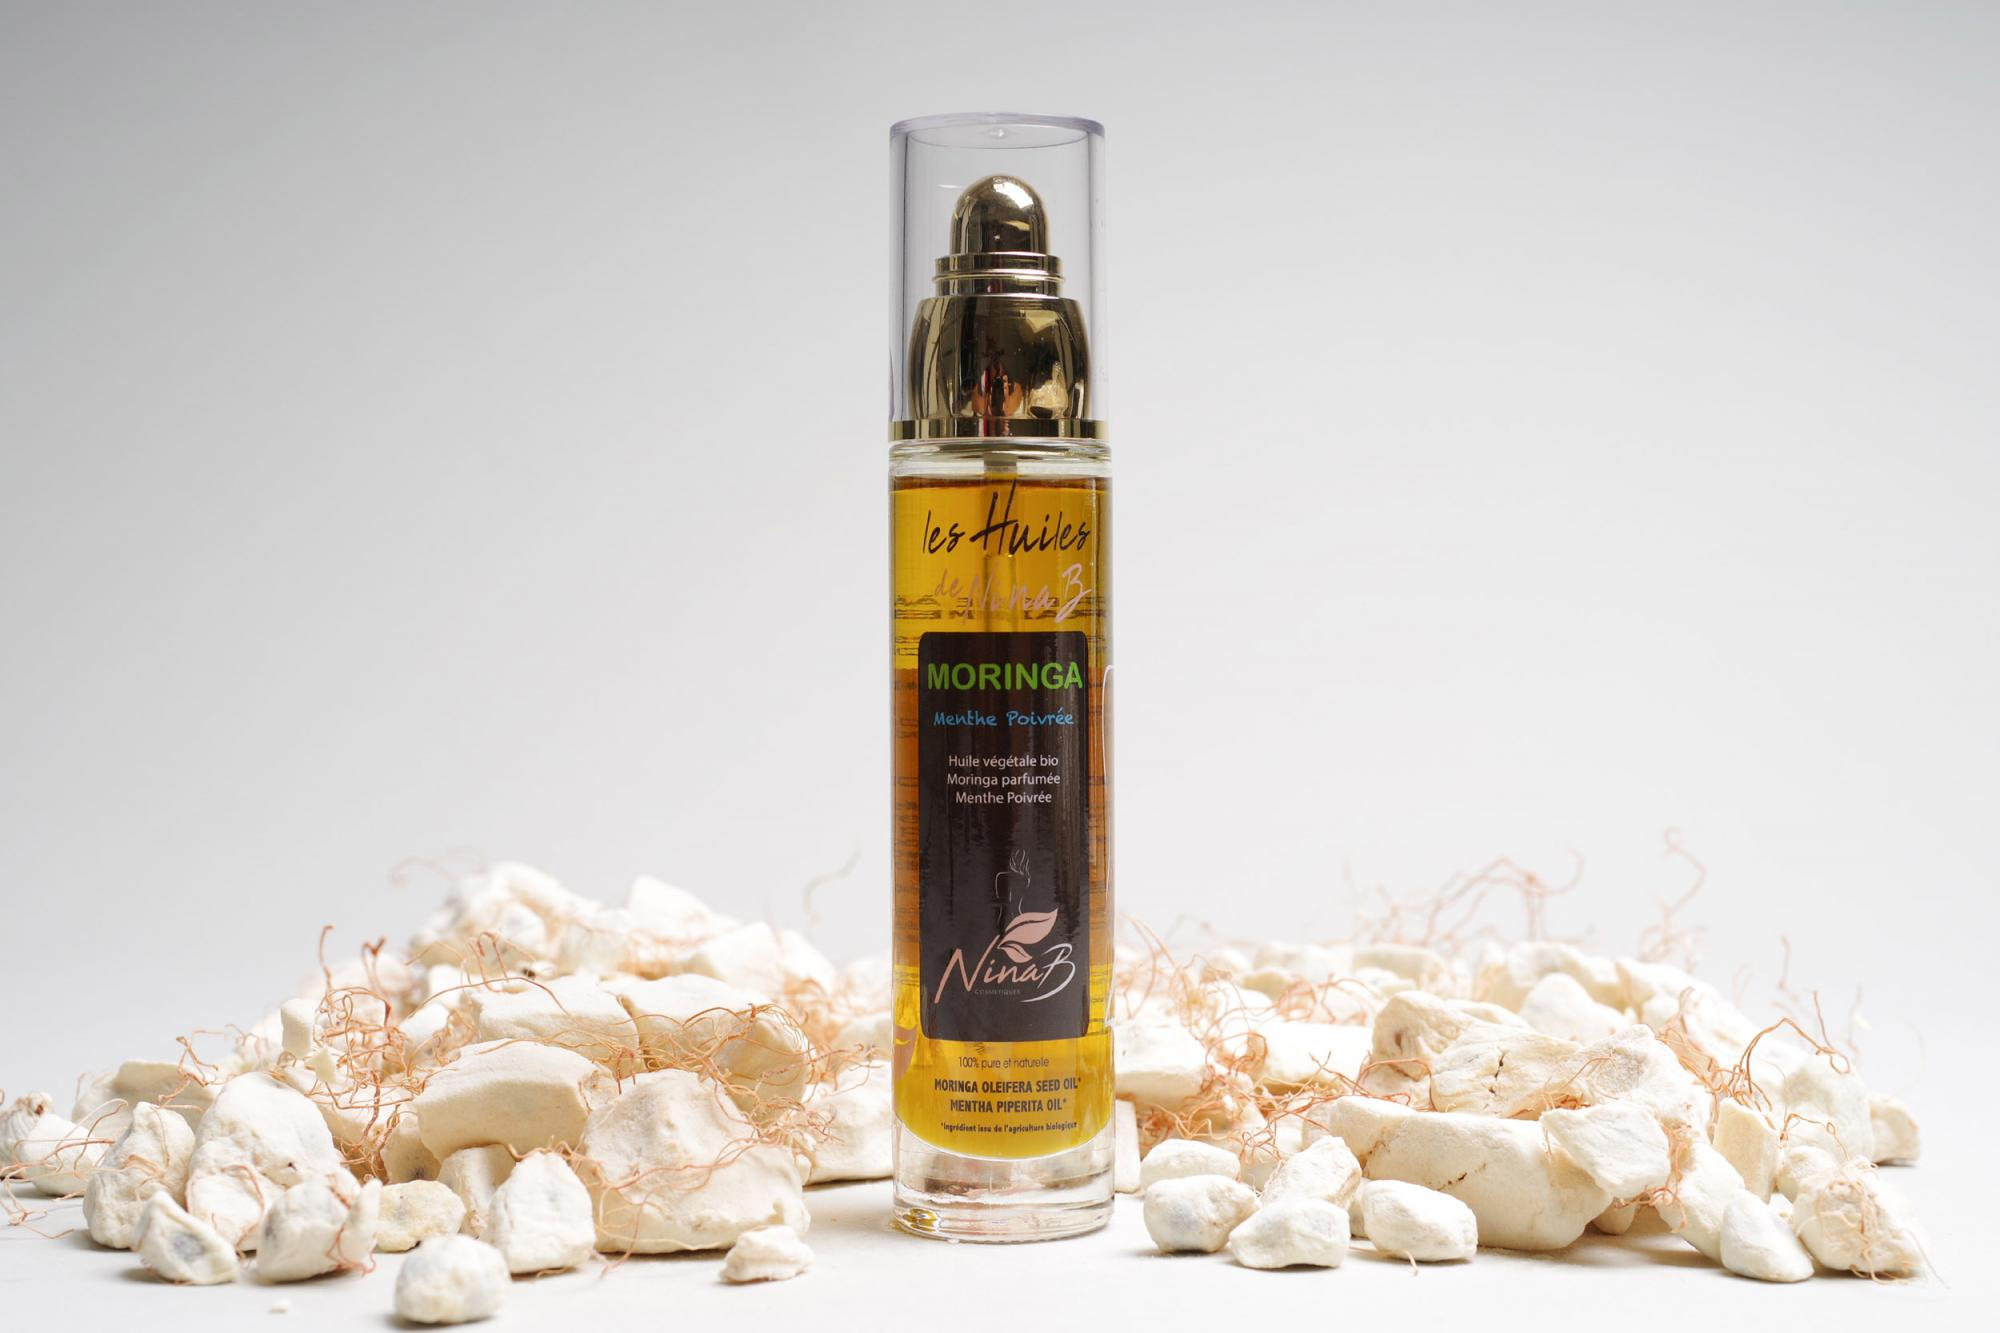 Moringa Oil with Organic Peppermint extracts - Natural, organic cosmetic product, certified ECOCERT COSMOS ORGANIC